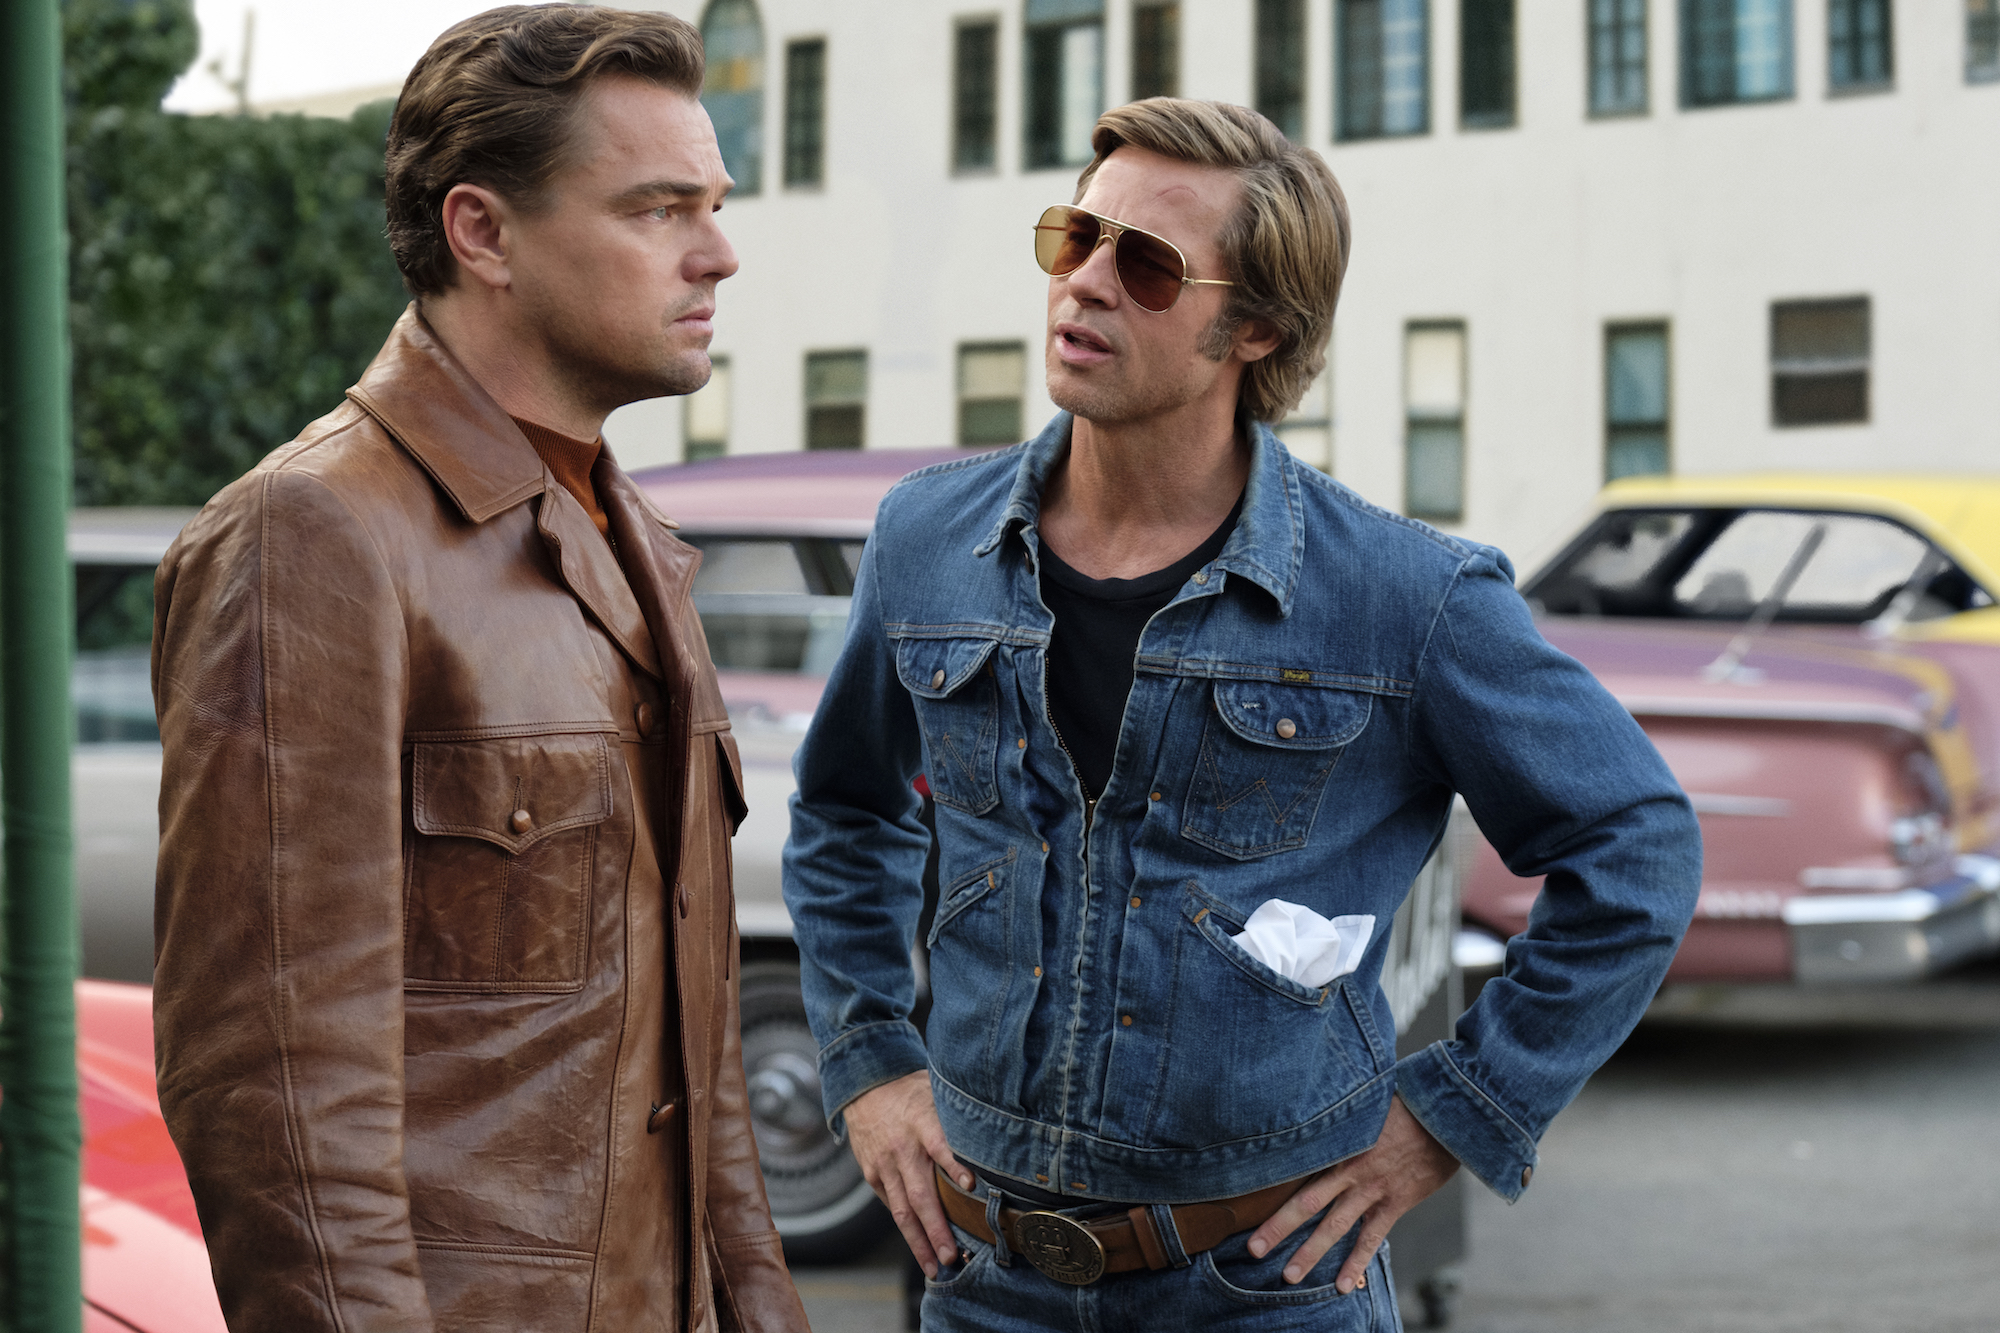 Leonardo DiCaprio and Brad Pitt star in ONCE UPON TIME IN HOLLYWOOD leather jacket